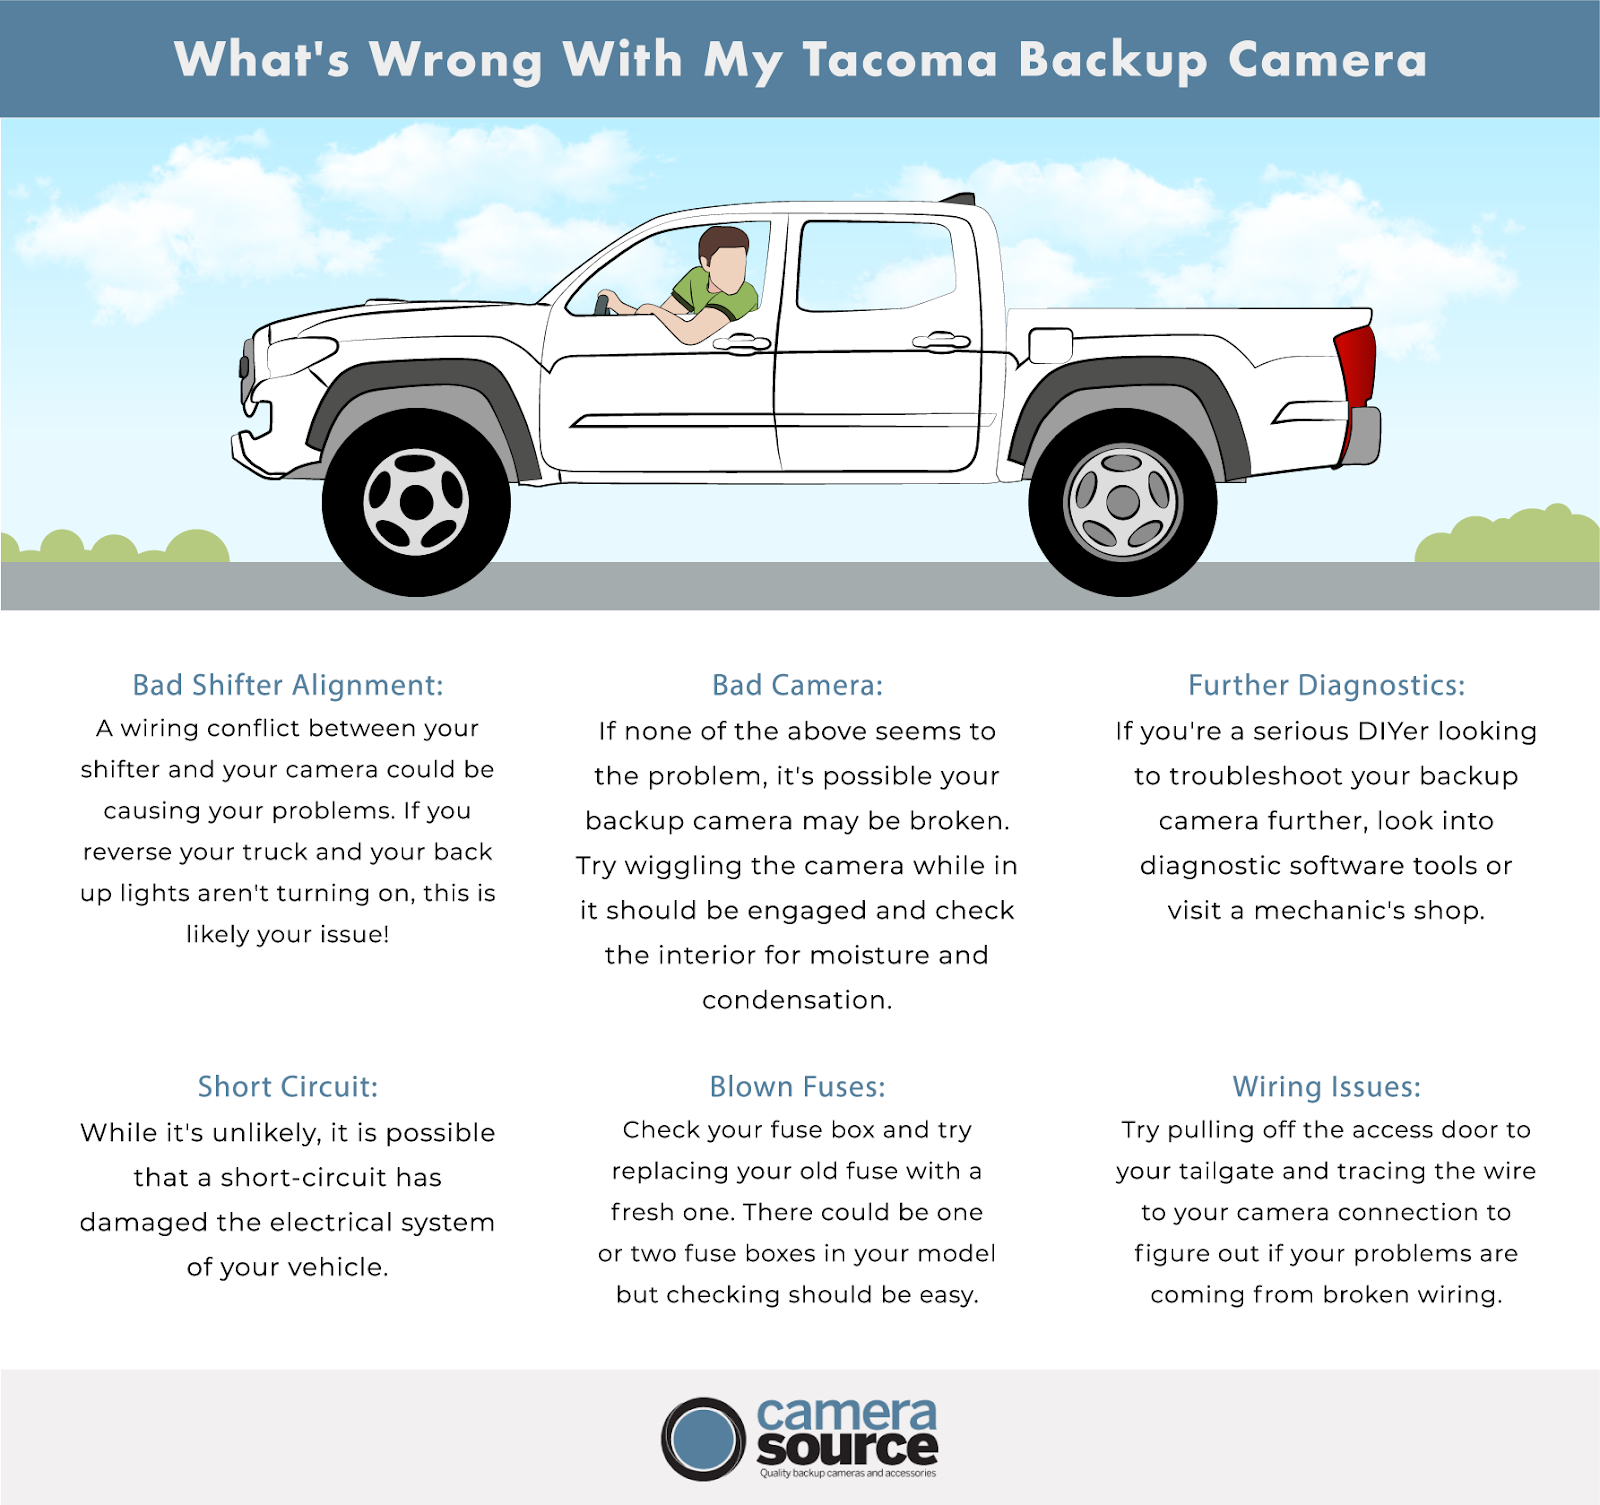 toyota tacoma horn wiring how to troubleshoot a broken toyota tacoma camera  troubleshoot a broken toyota tacoma camera